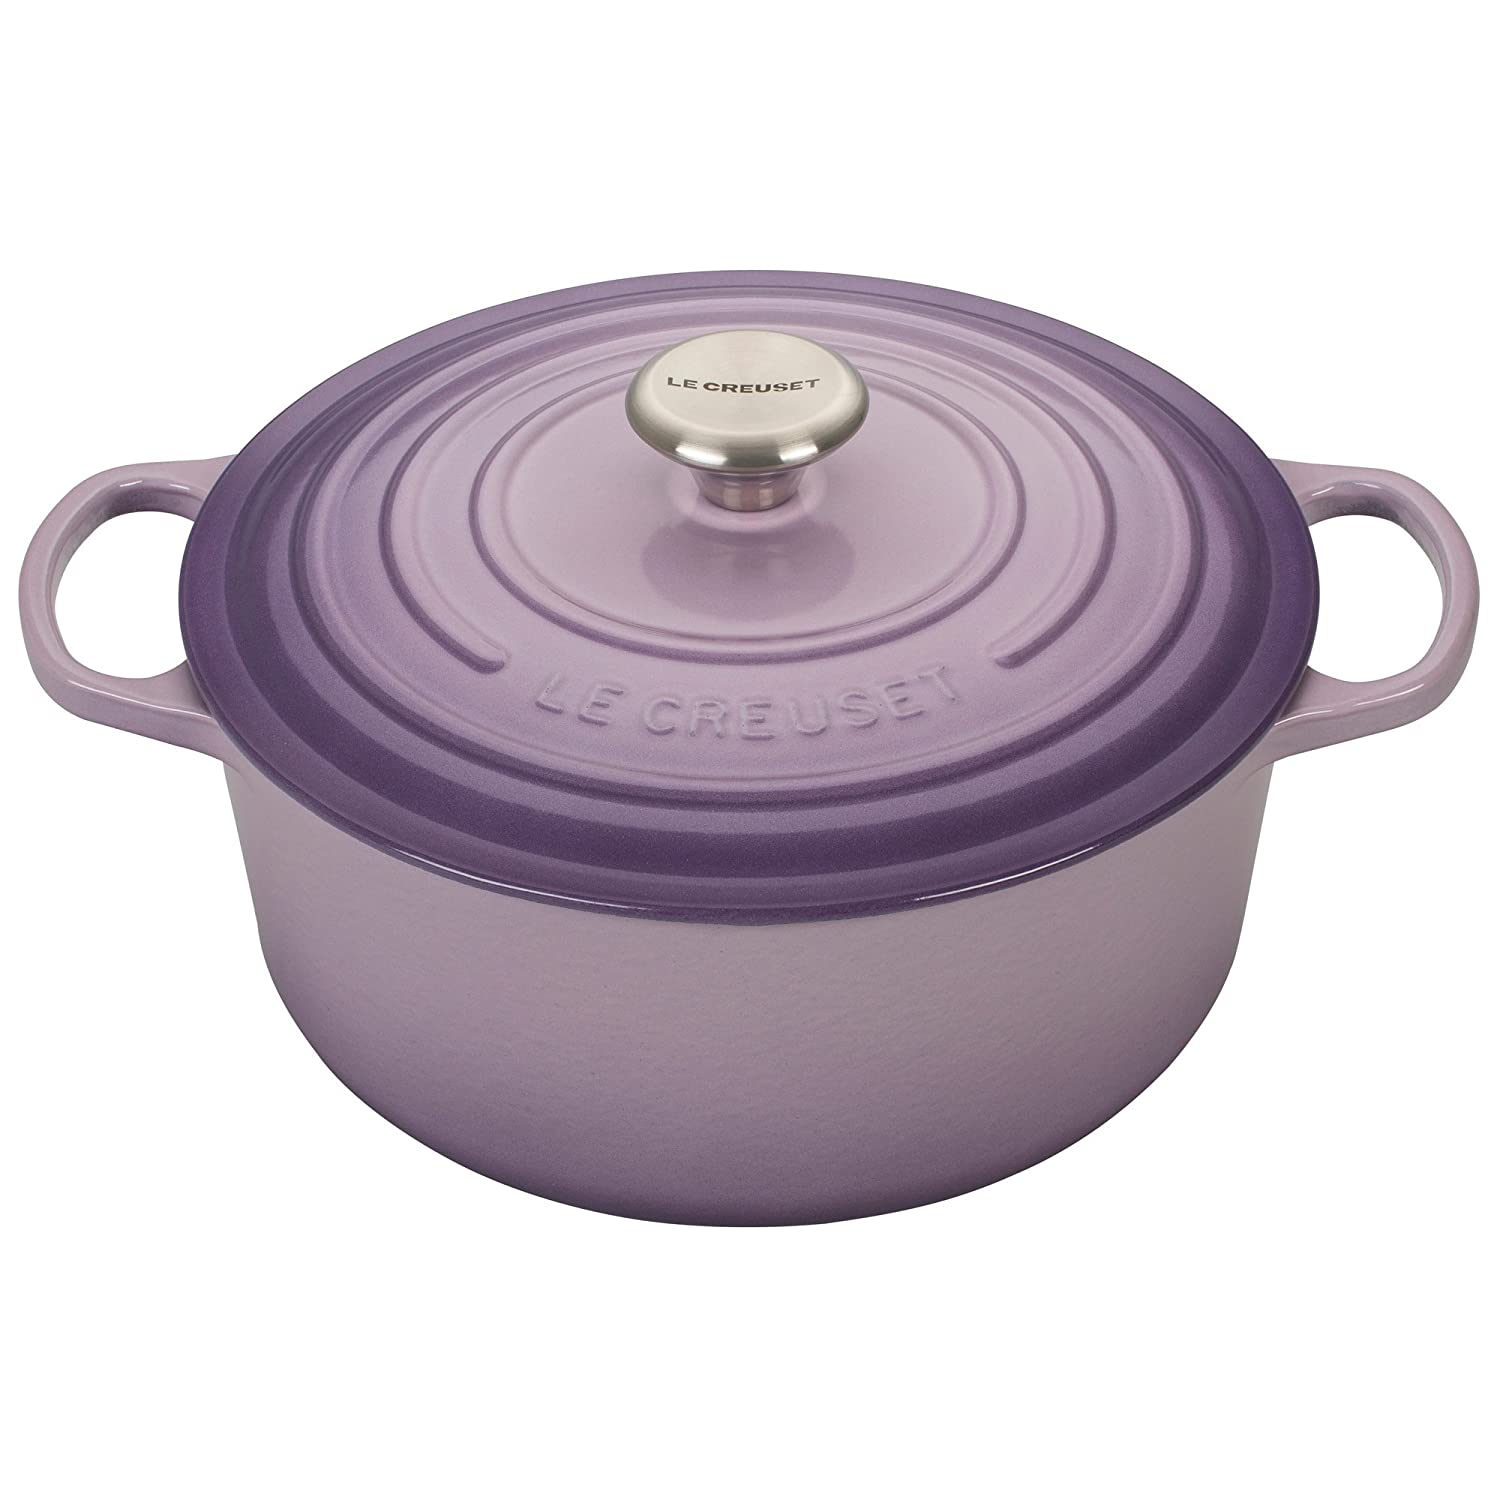 Le Creuset LS2501-26BPSS Signature Enameled Cast-Iron 5-1/2-Quart Round Dutch Oven, Provence